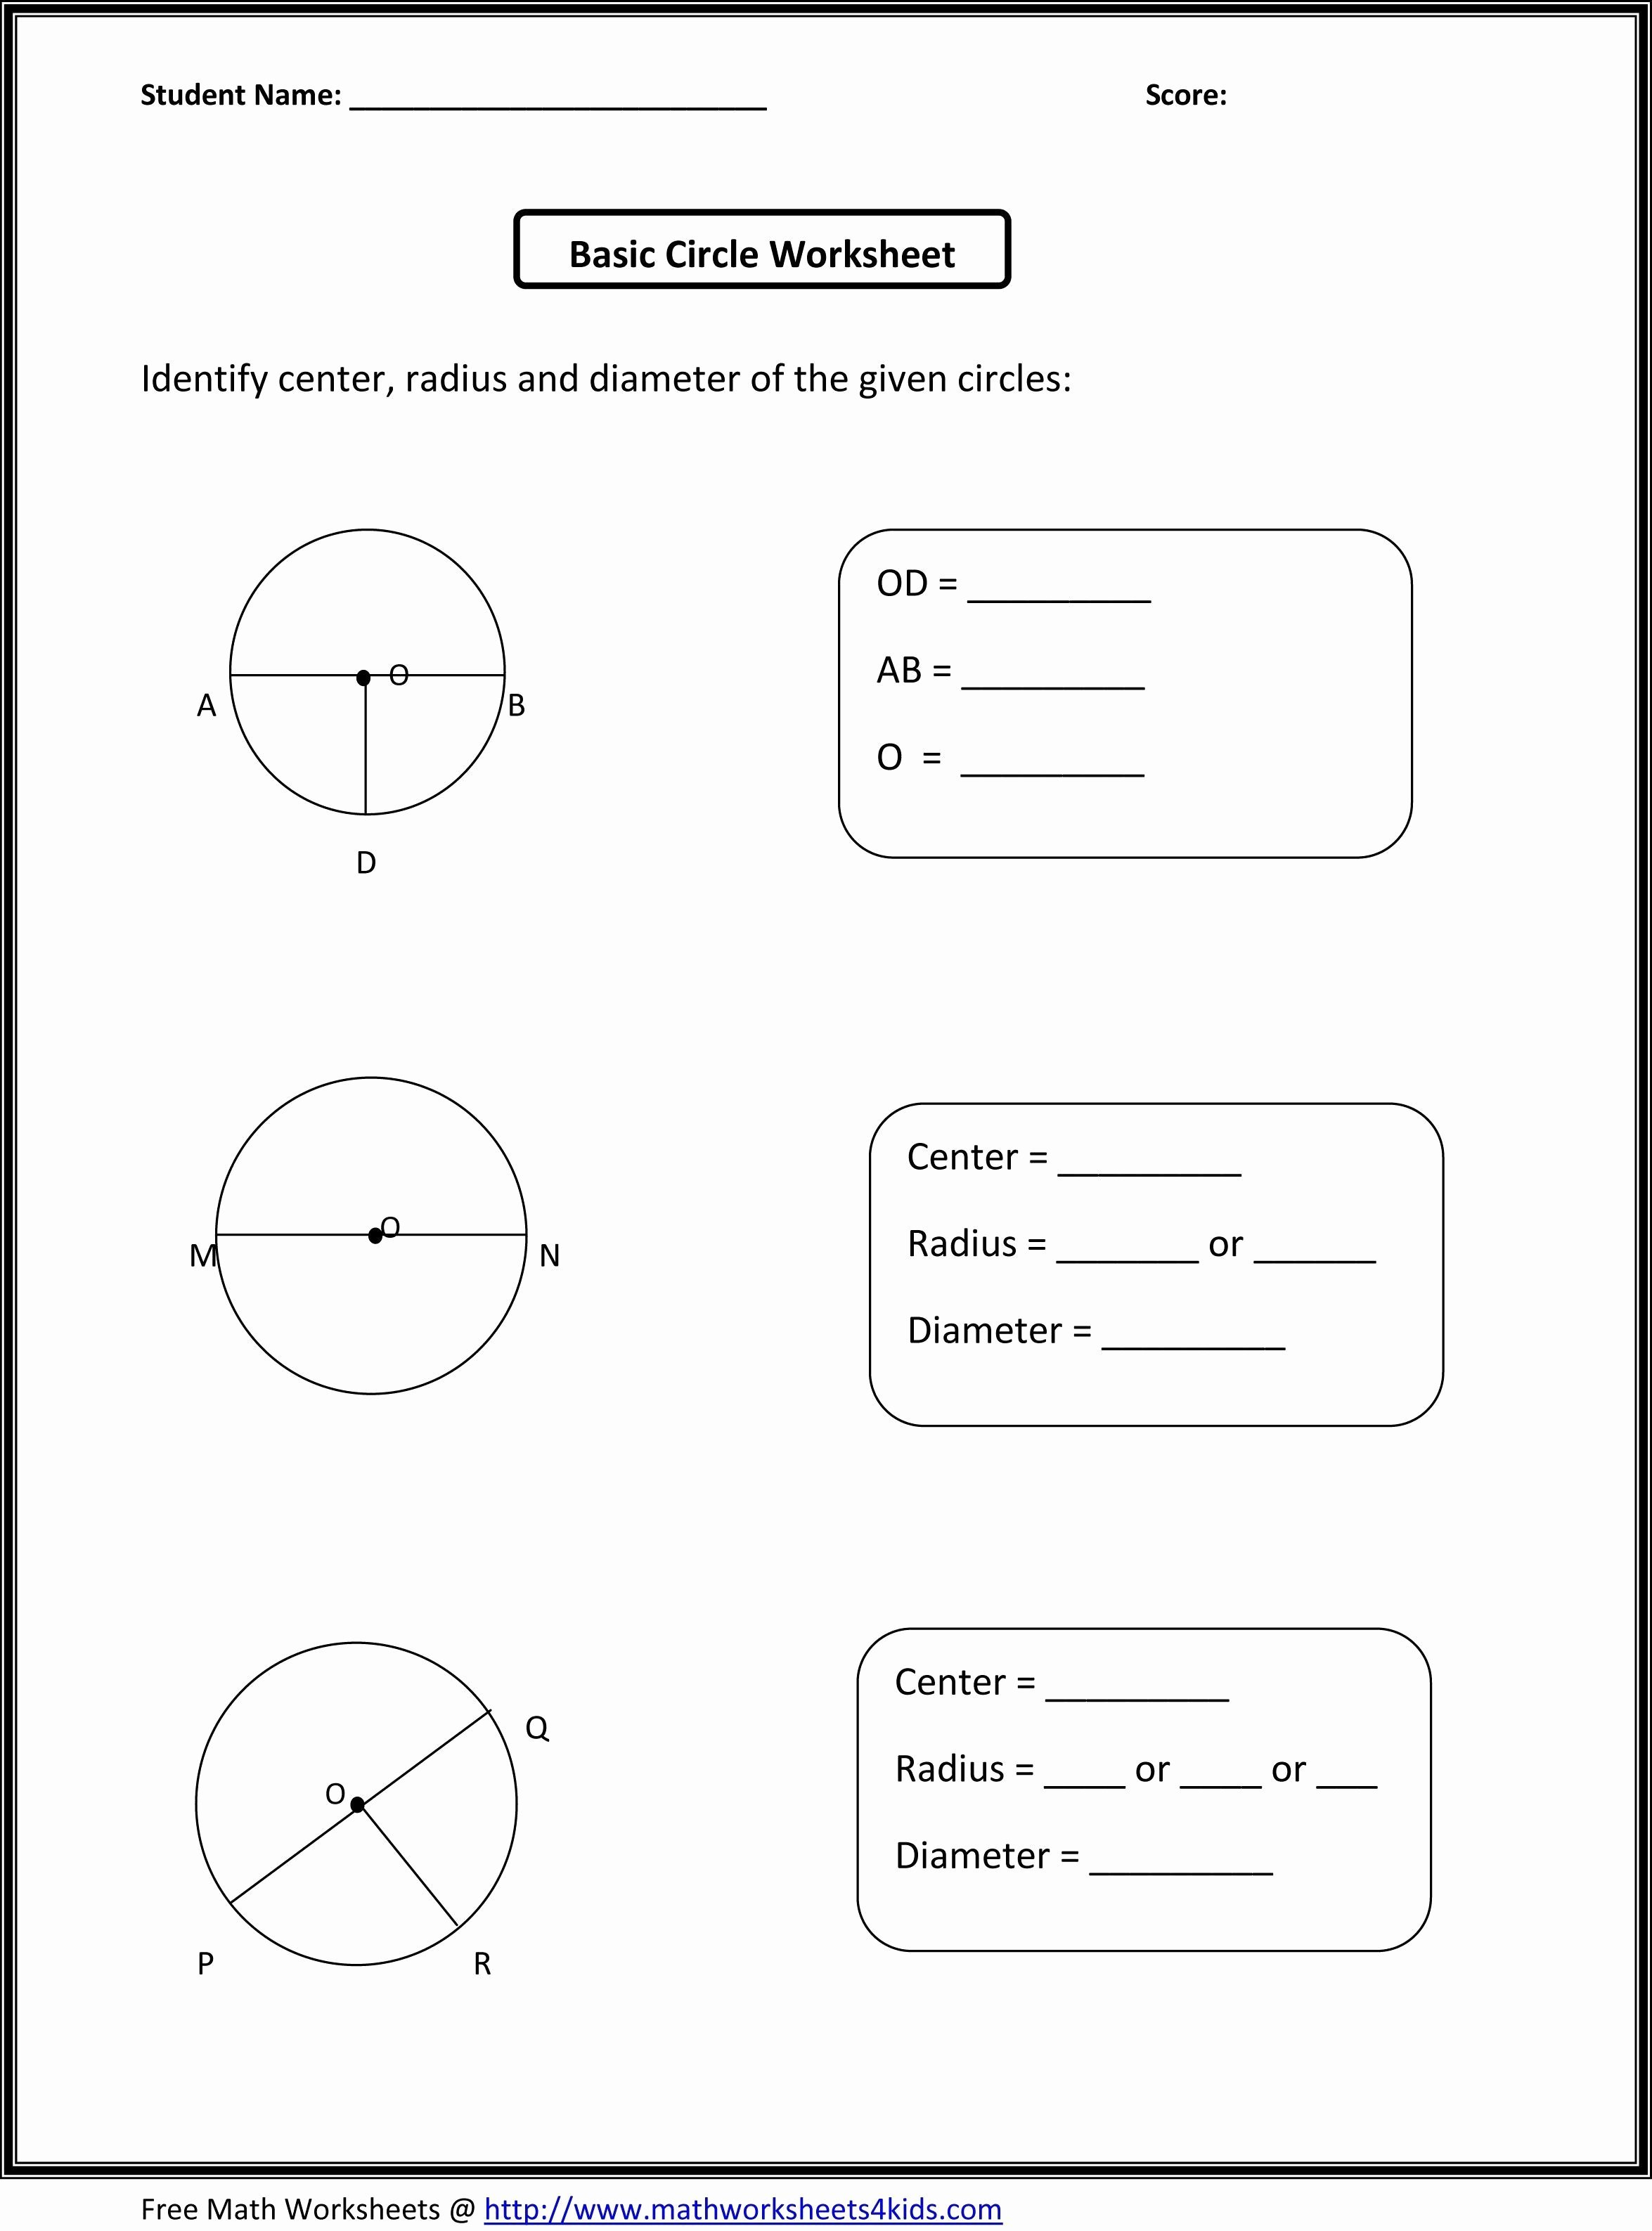 Energy Transformation Worksheet Answers Beautiful Cursive Writing Inside Energy Transformation Worksheet